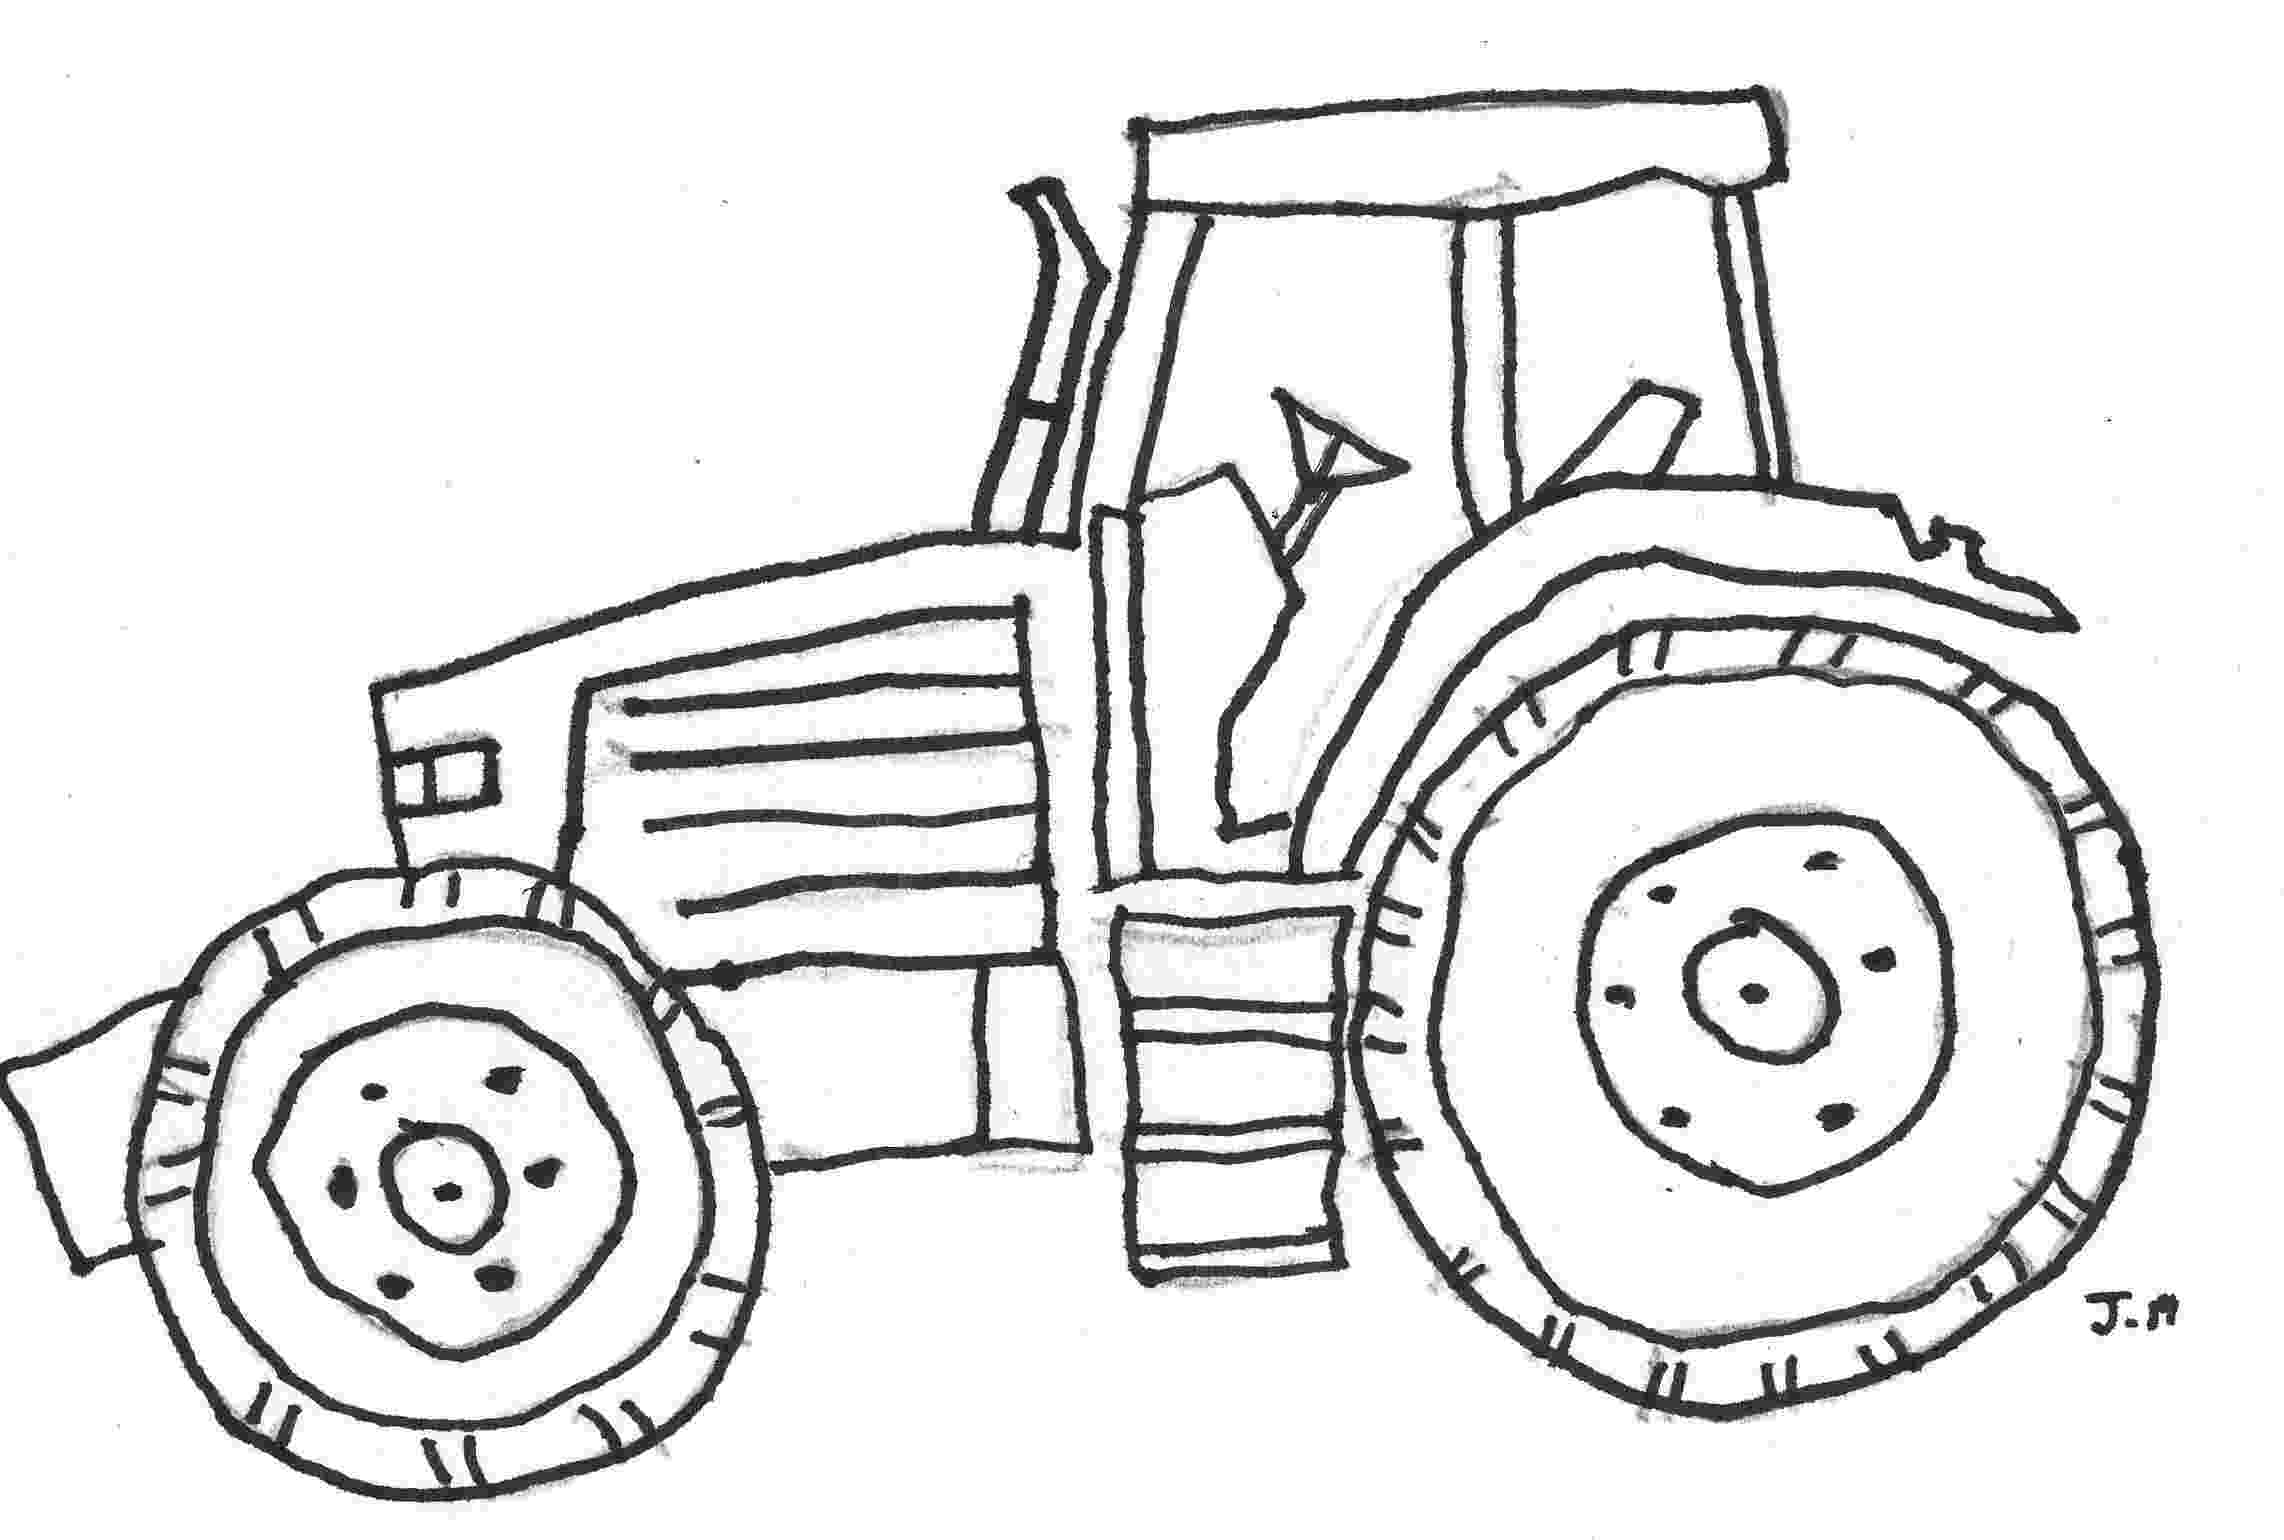 coloring pages of tractors tractor coloring pages to download and print for free pages of coloring tractors